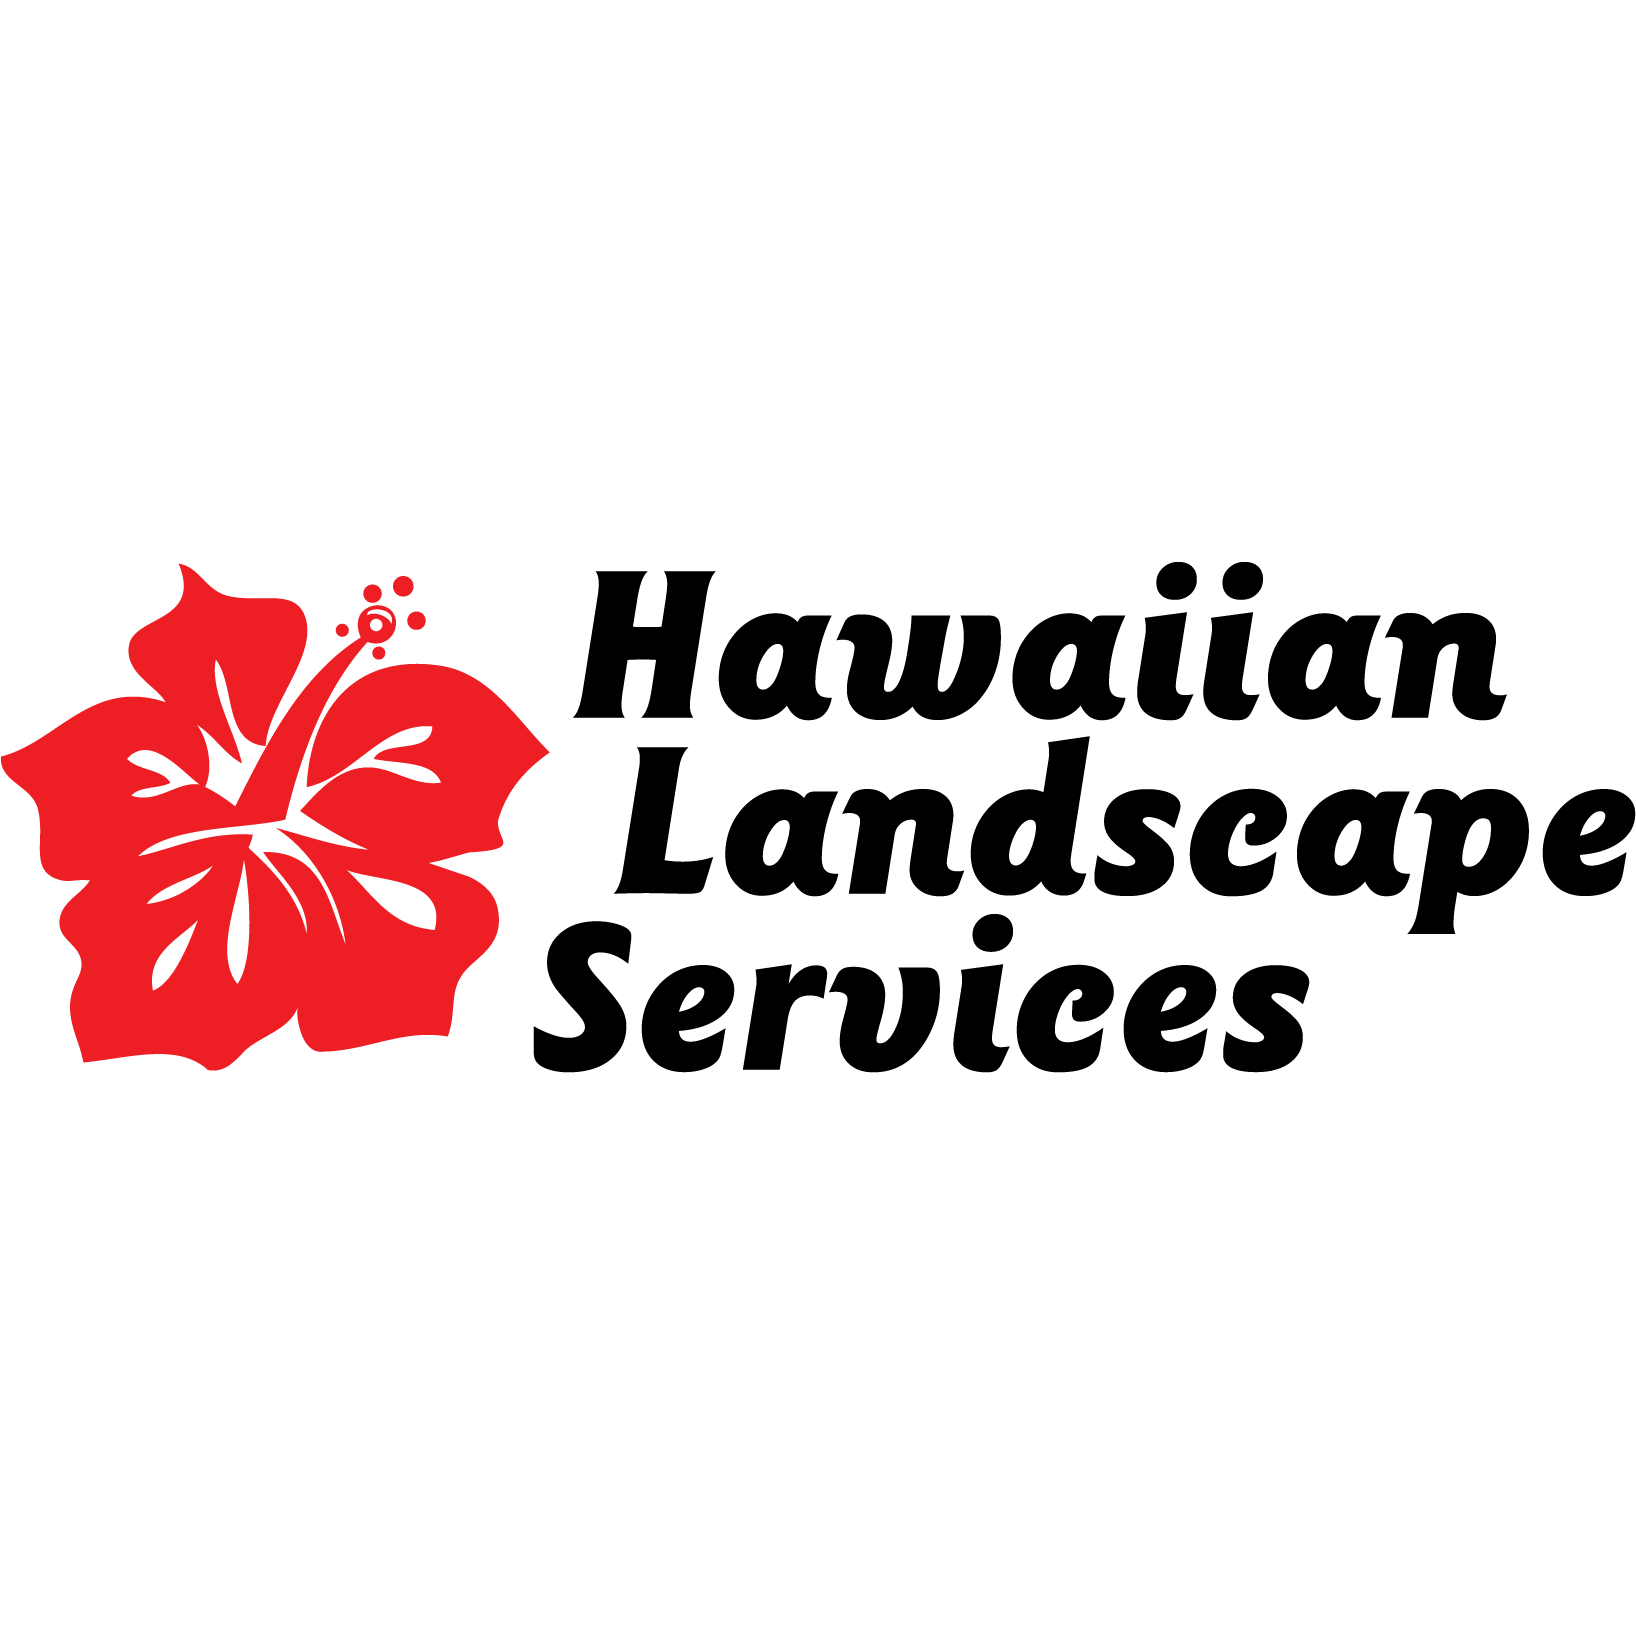 Hawaiian landscape services coupons near me in wylie for Landscaping services near me